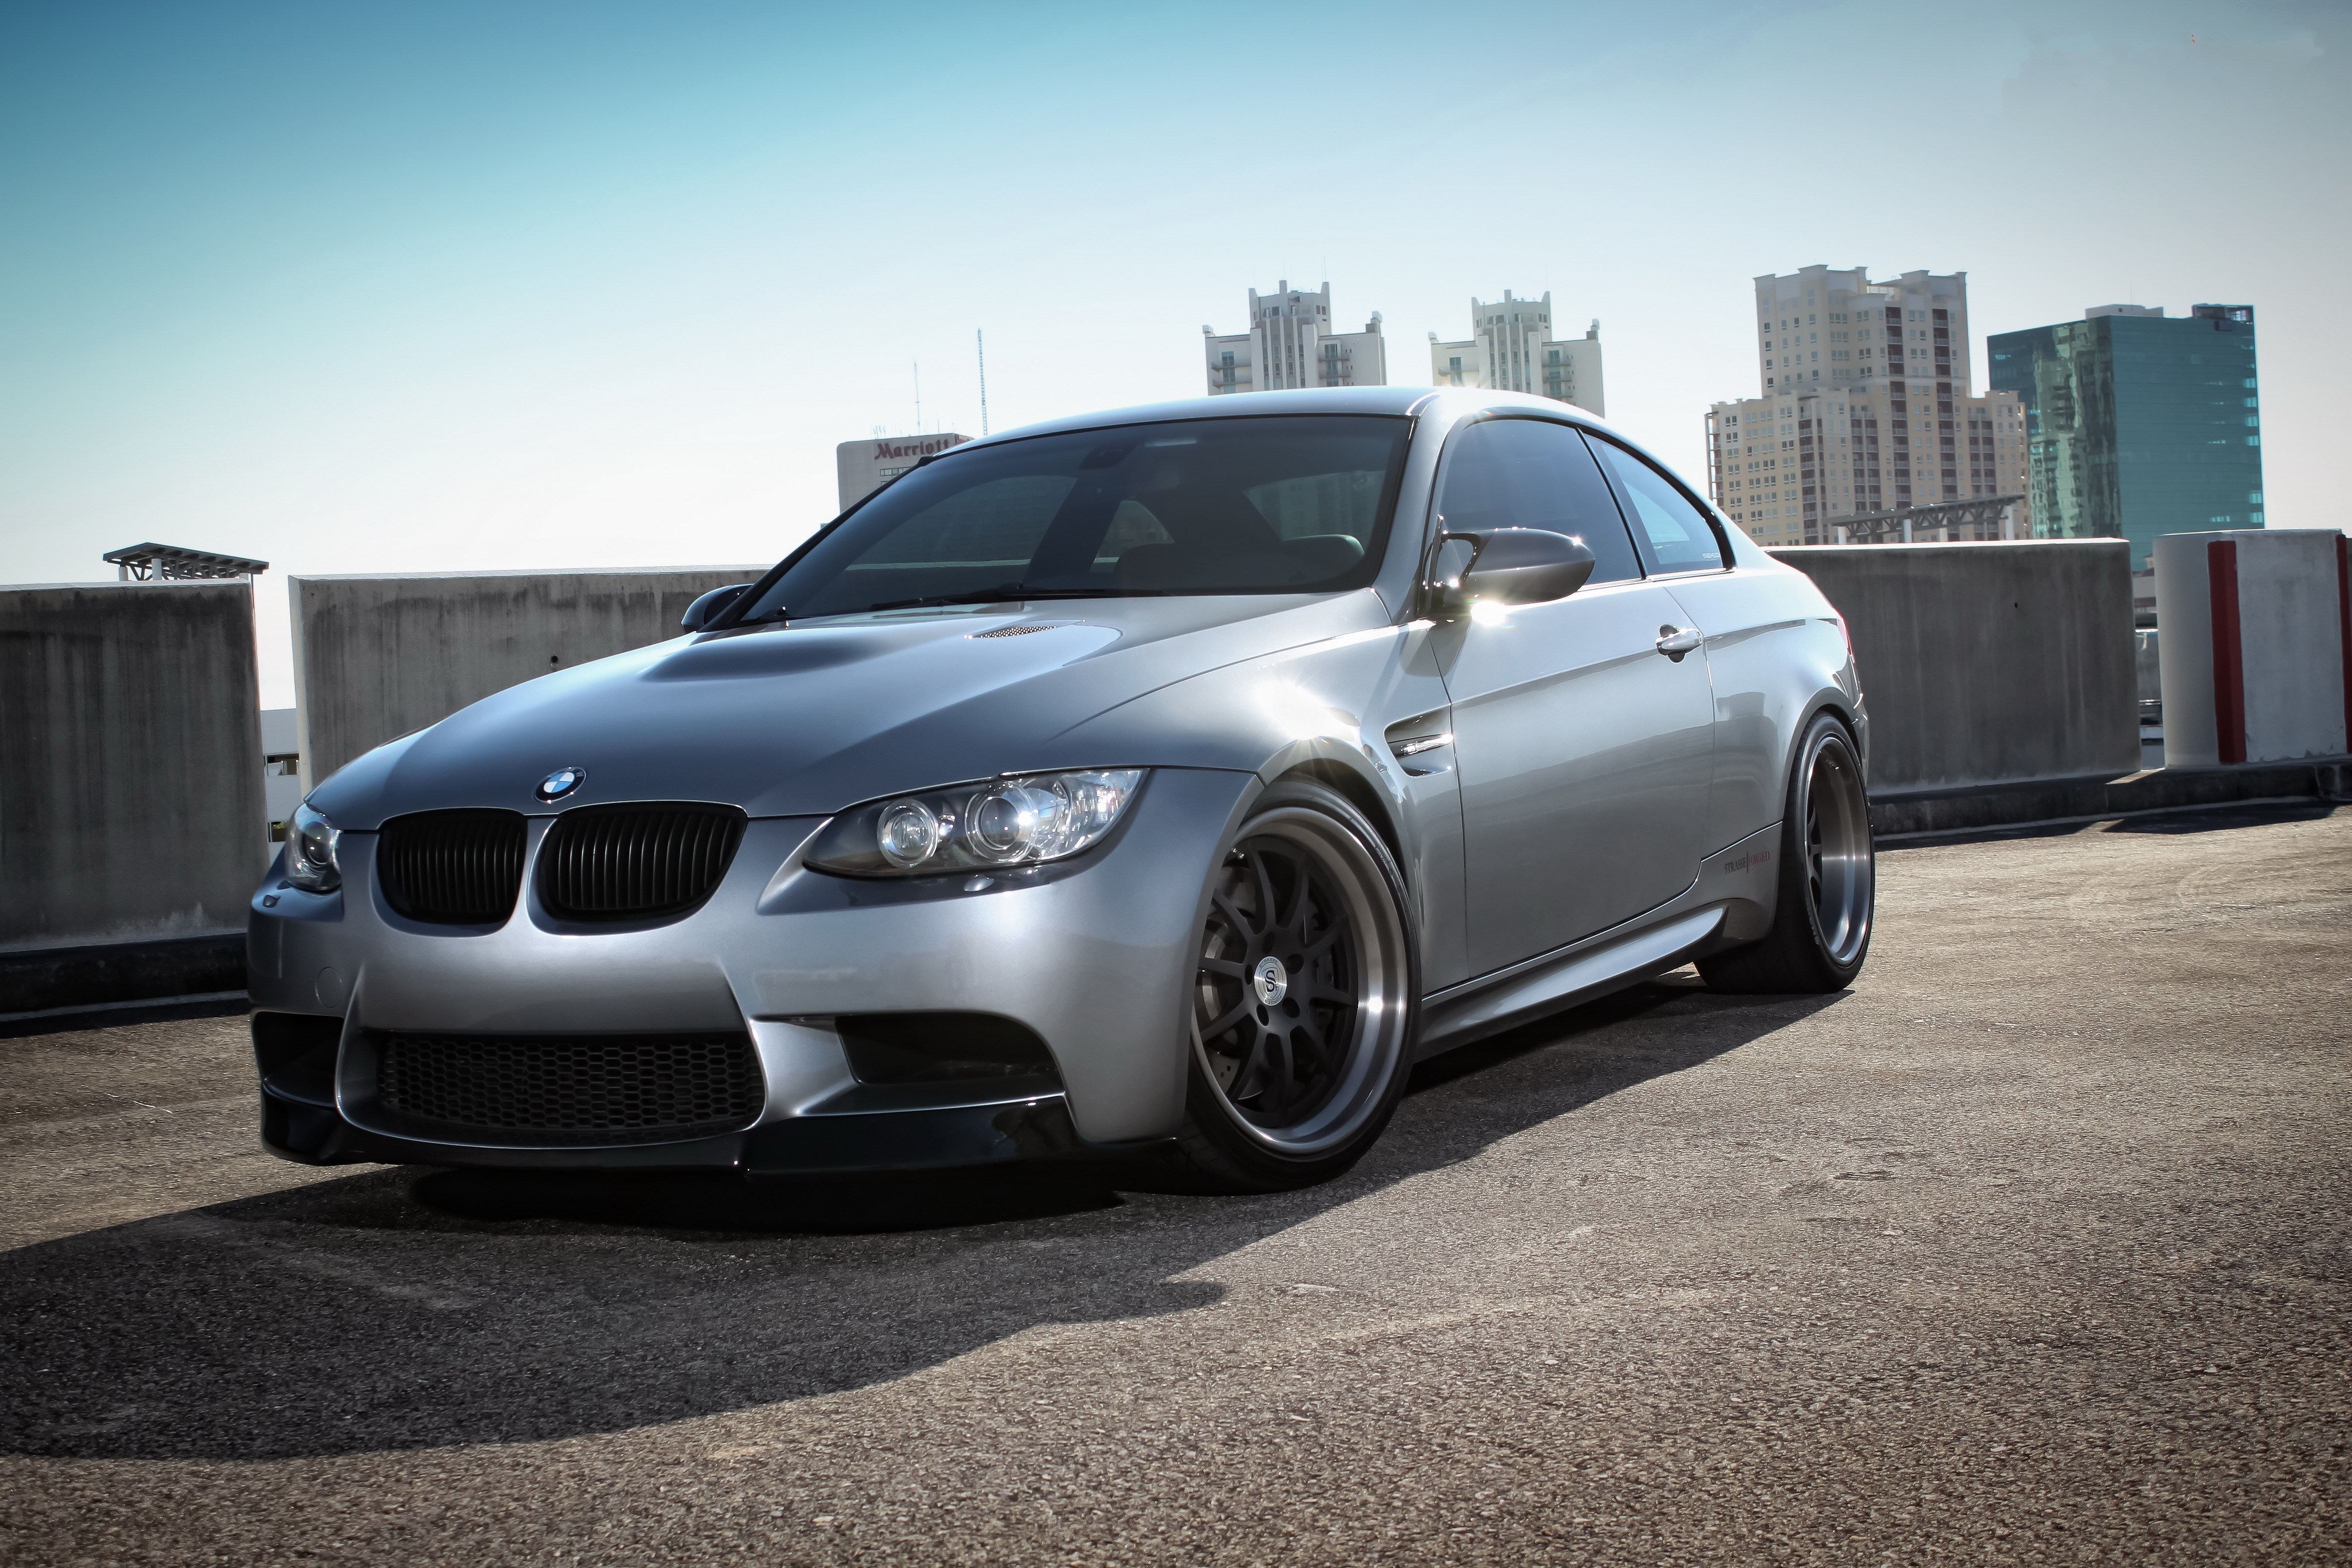 Bmw M3 Hd Wallpaper: BMW M3 Wallpapers, Pictures, Images